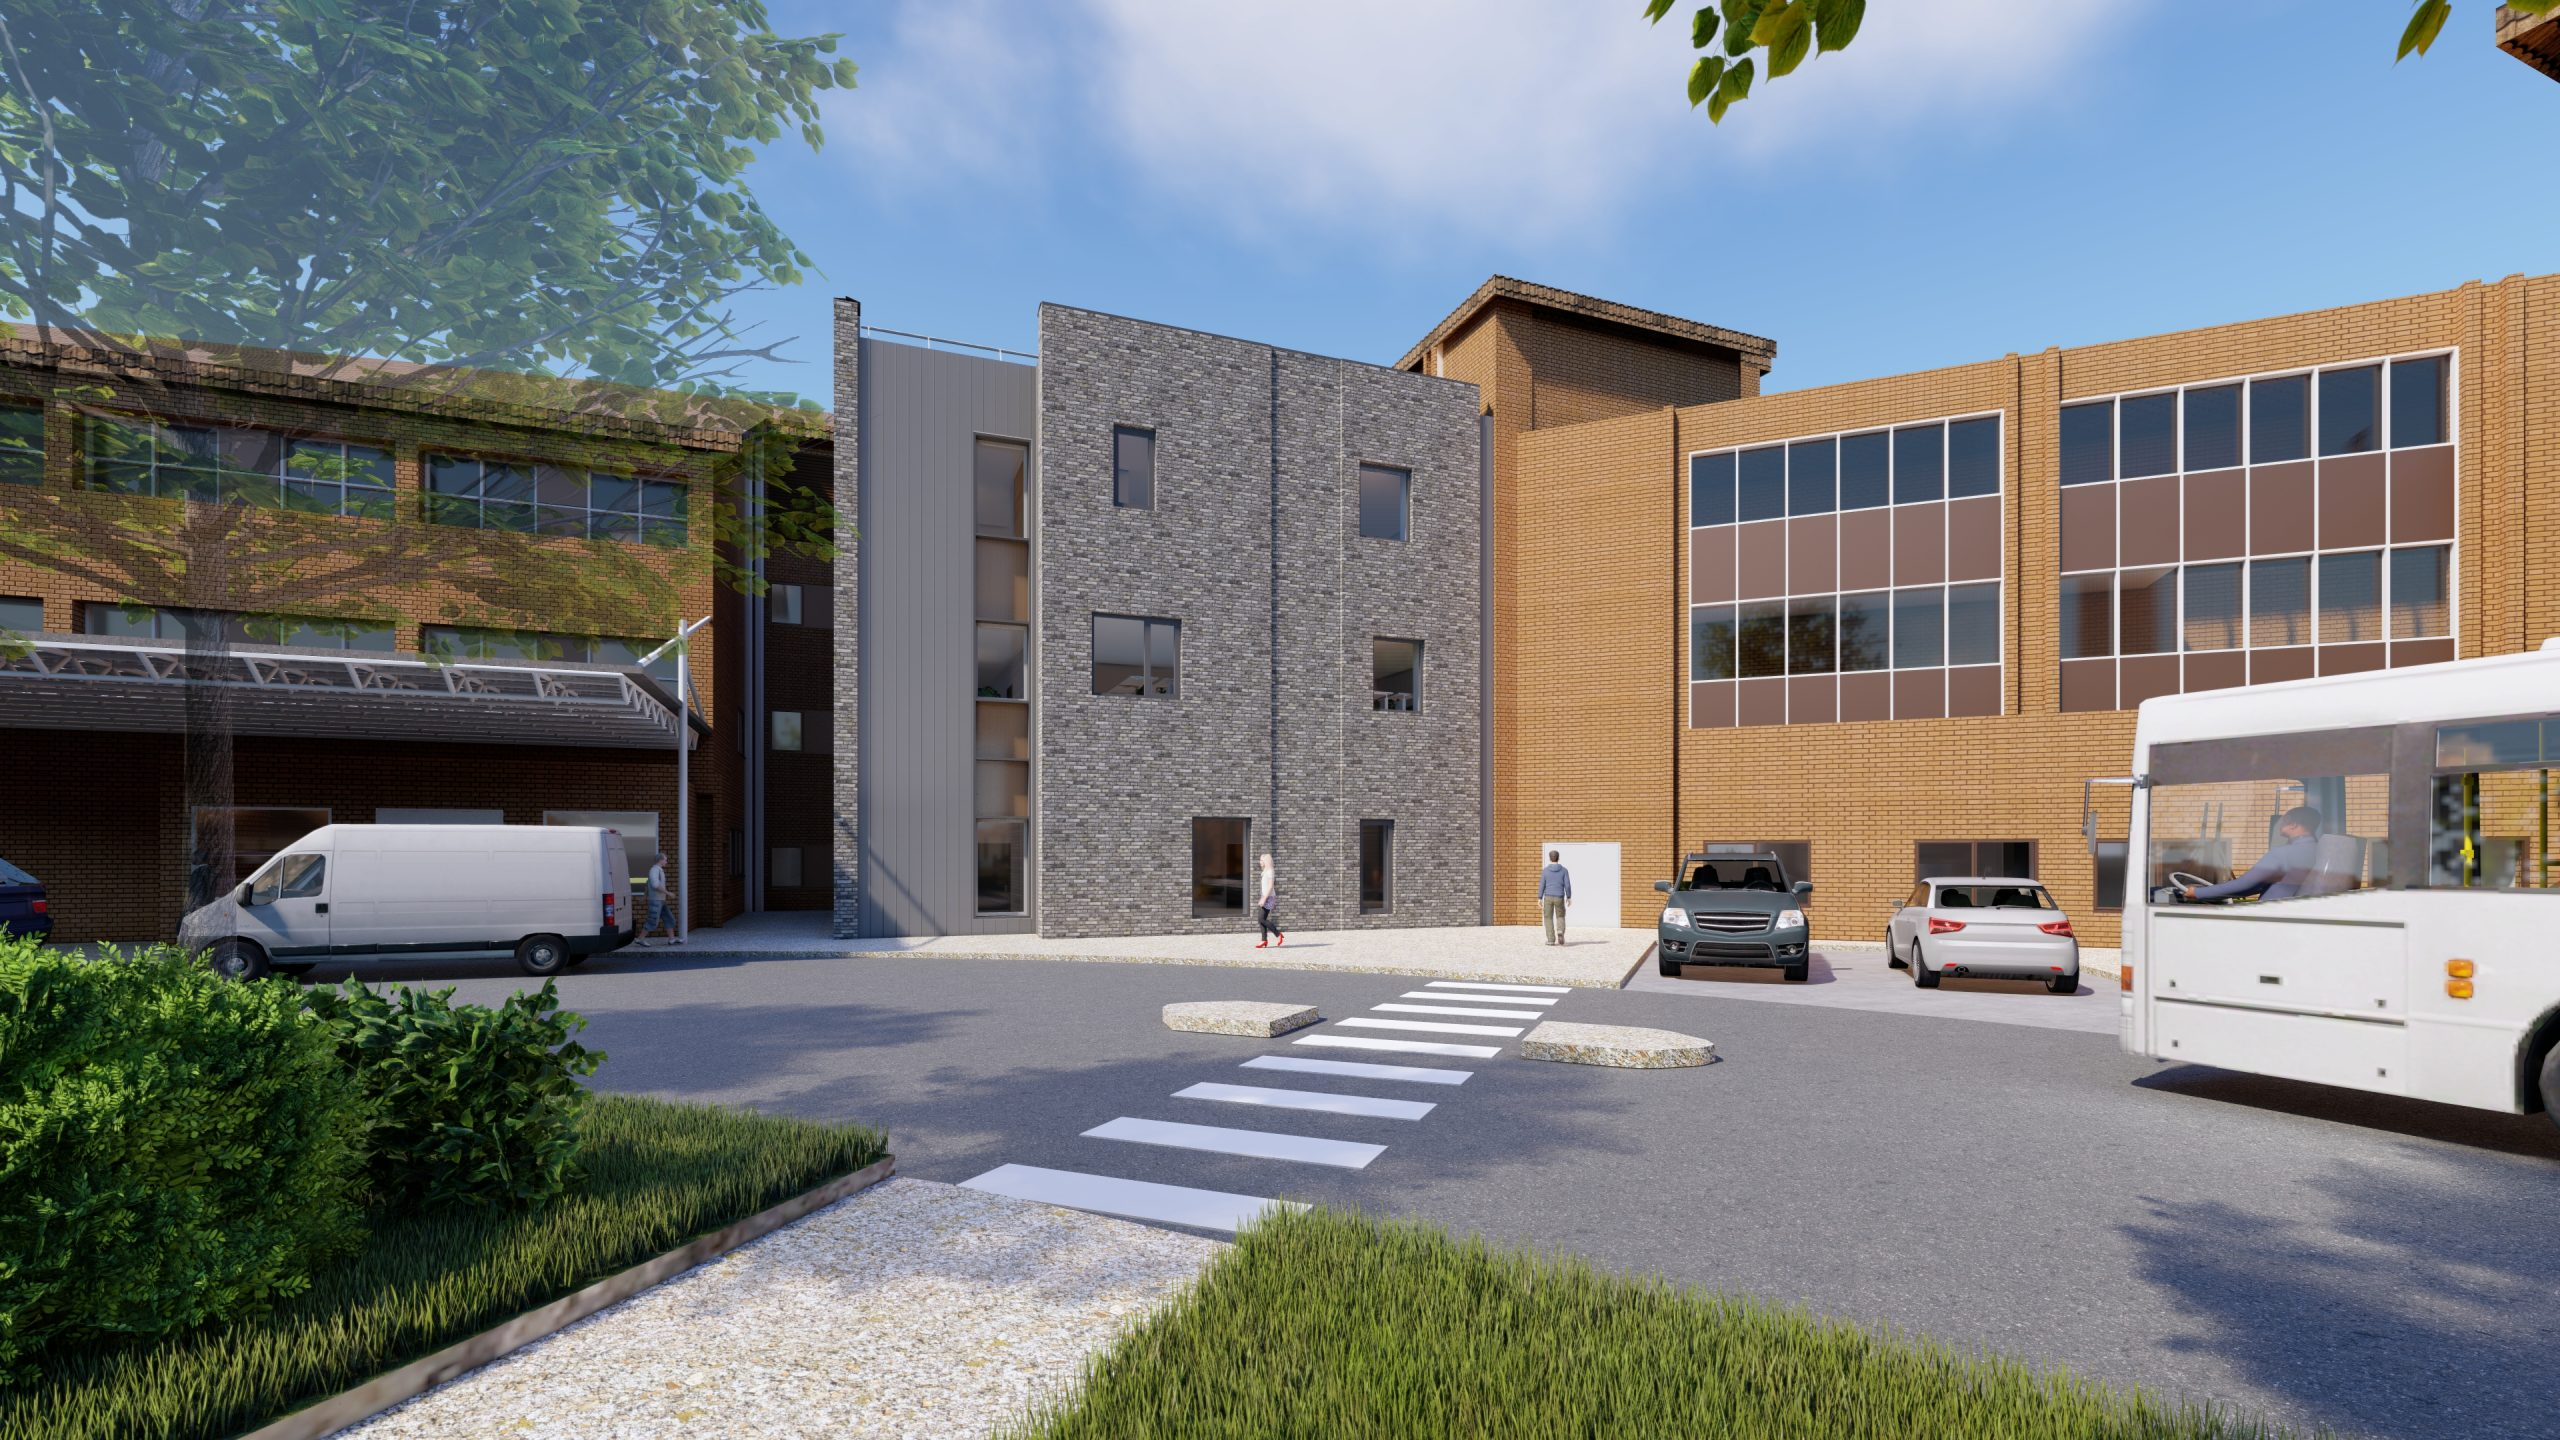 Construction work gets underway on major project that will help to transform Musgrove Park Hospital